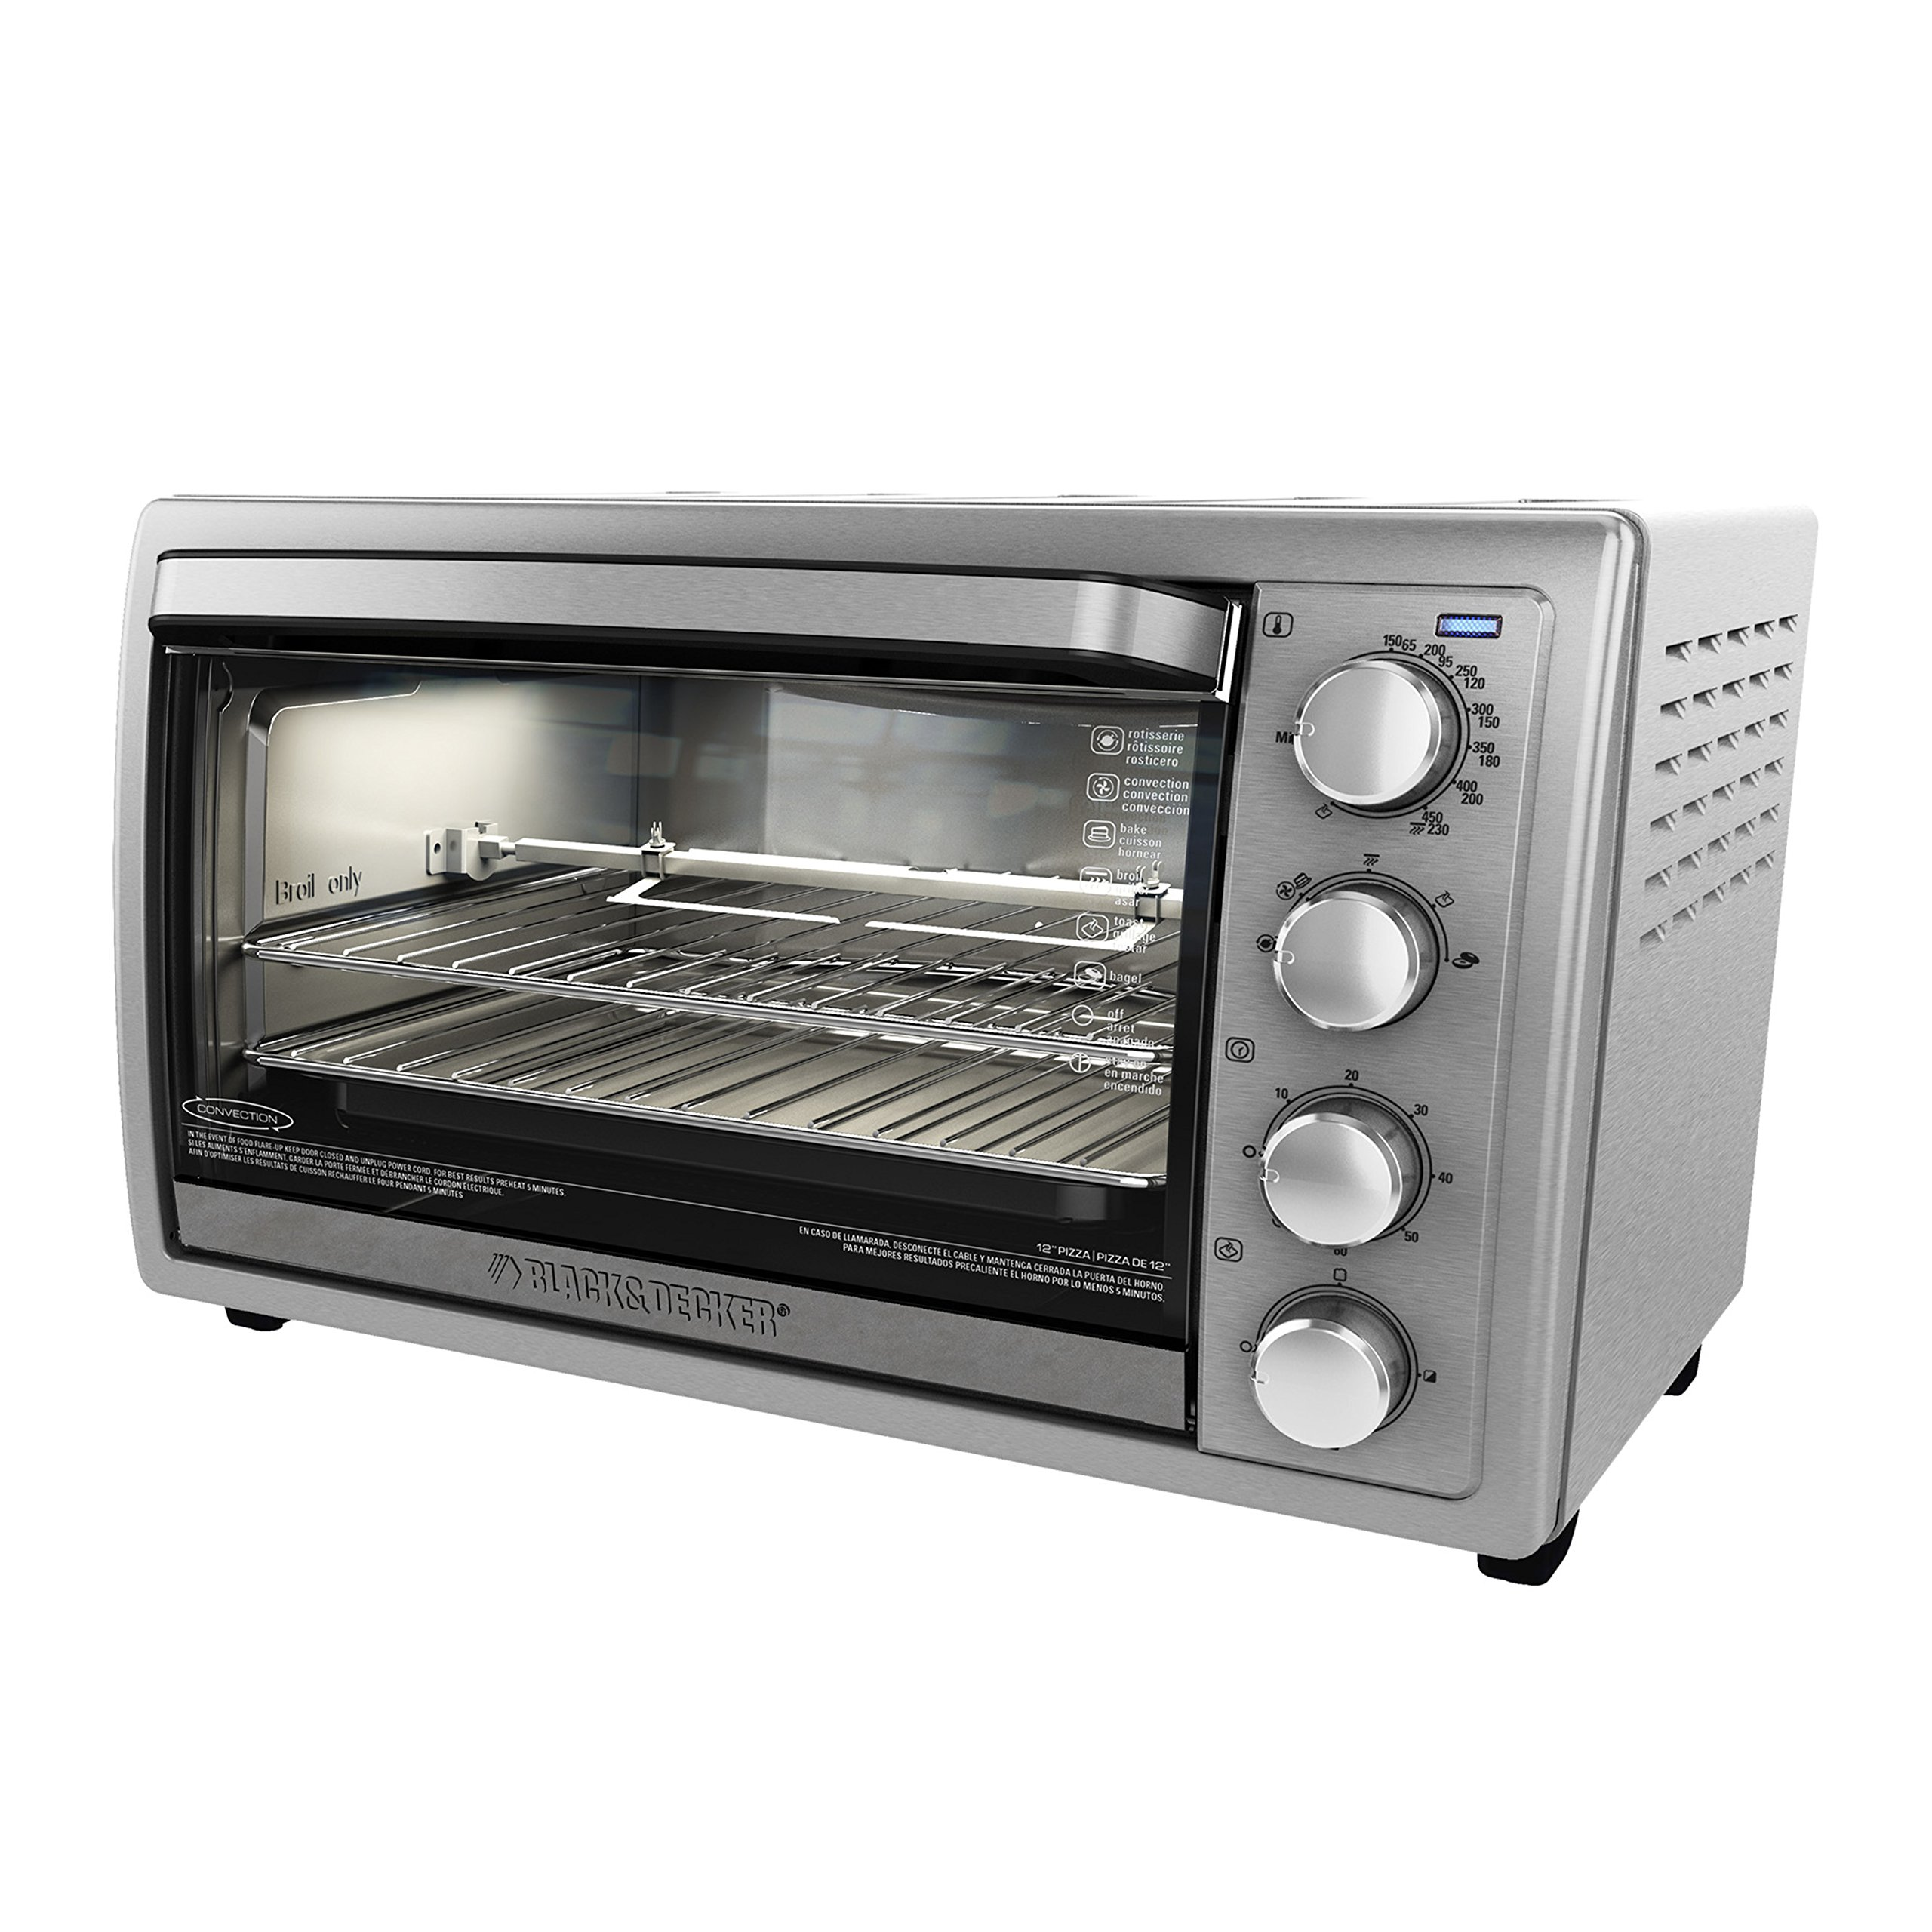 BLACK+DECKER TO4314SSD WCR-076 Rotisserie Toaster Oven, 9X13, Silver by BLACK+DECKER